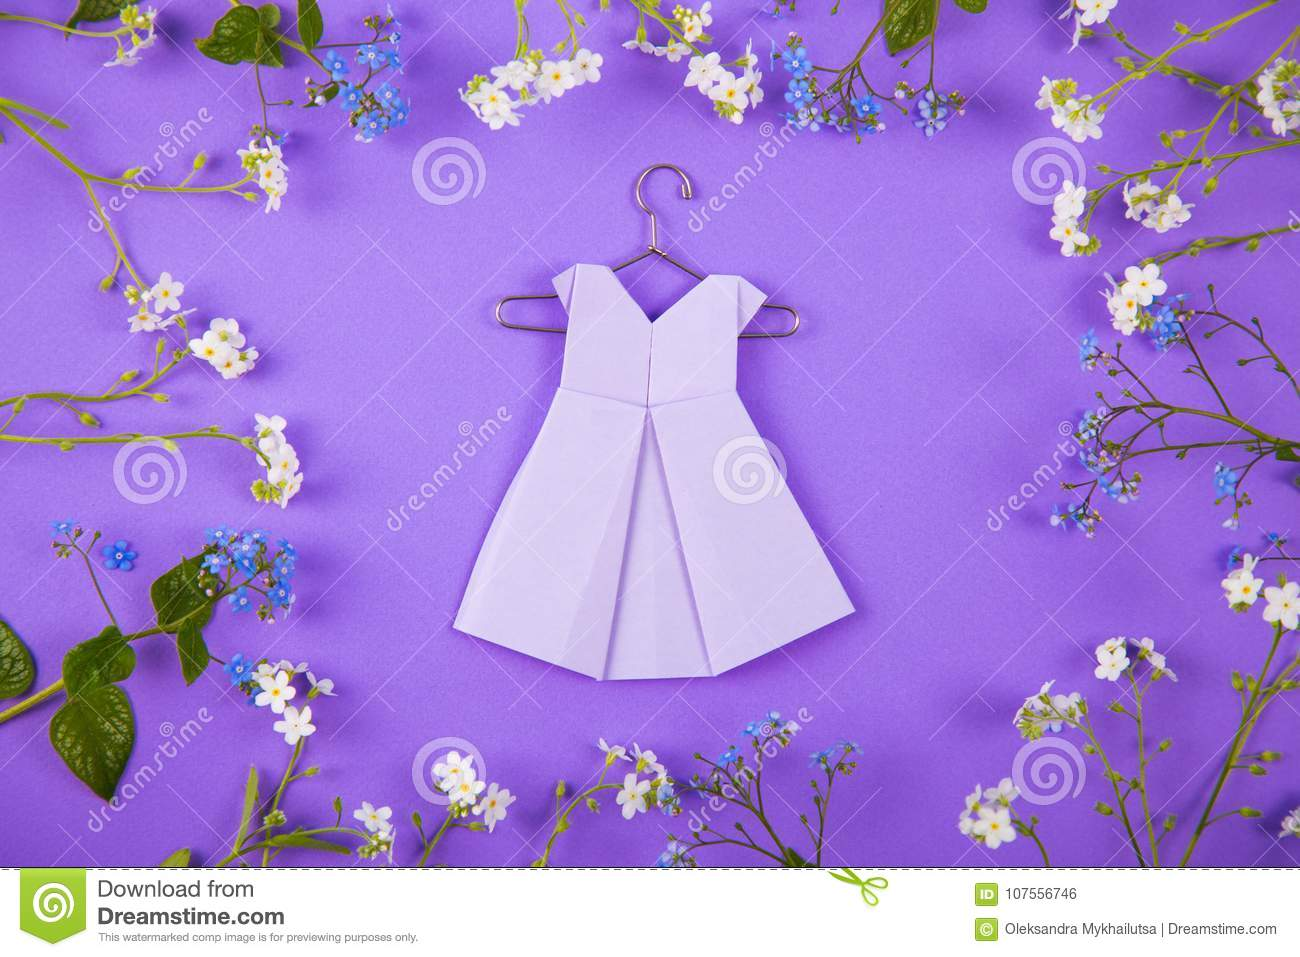 Paper Origami Dress On Hanger Surrounded With Blue And White Lit